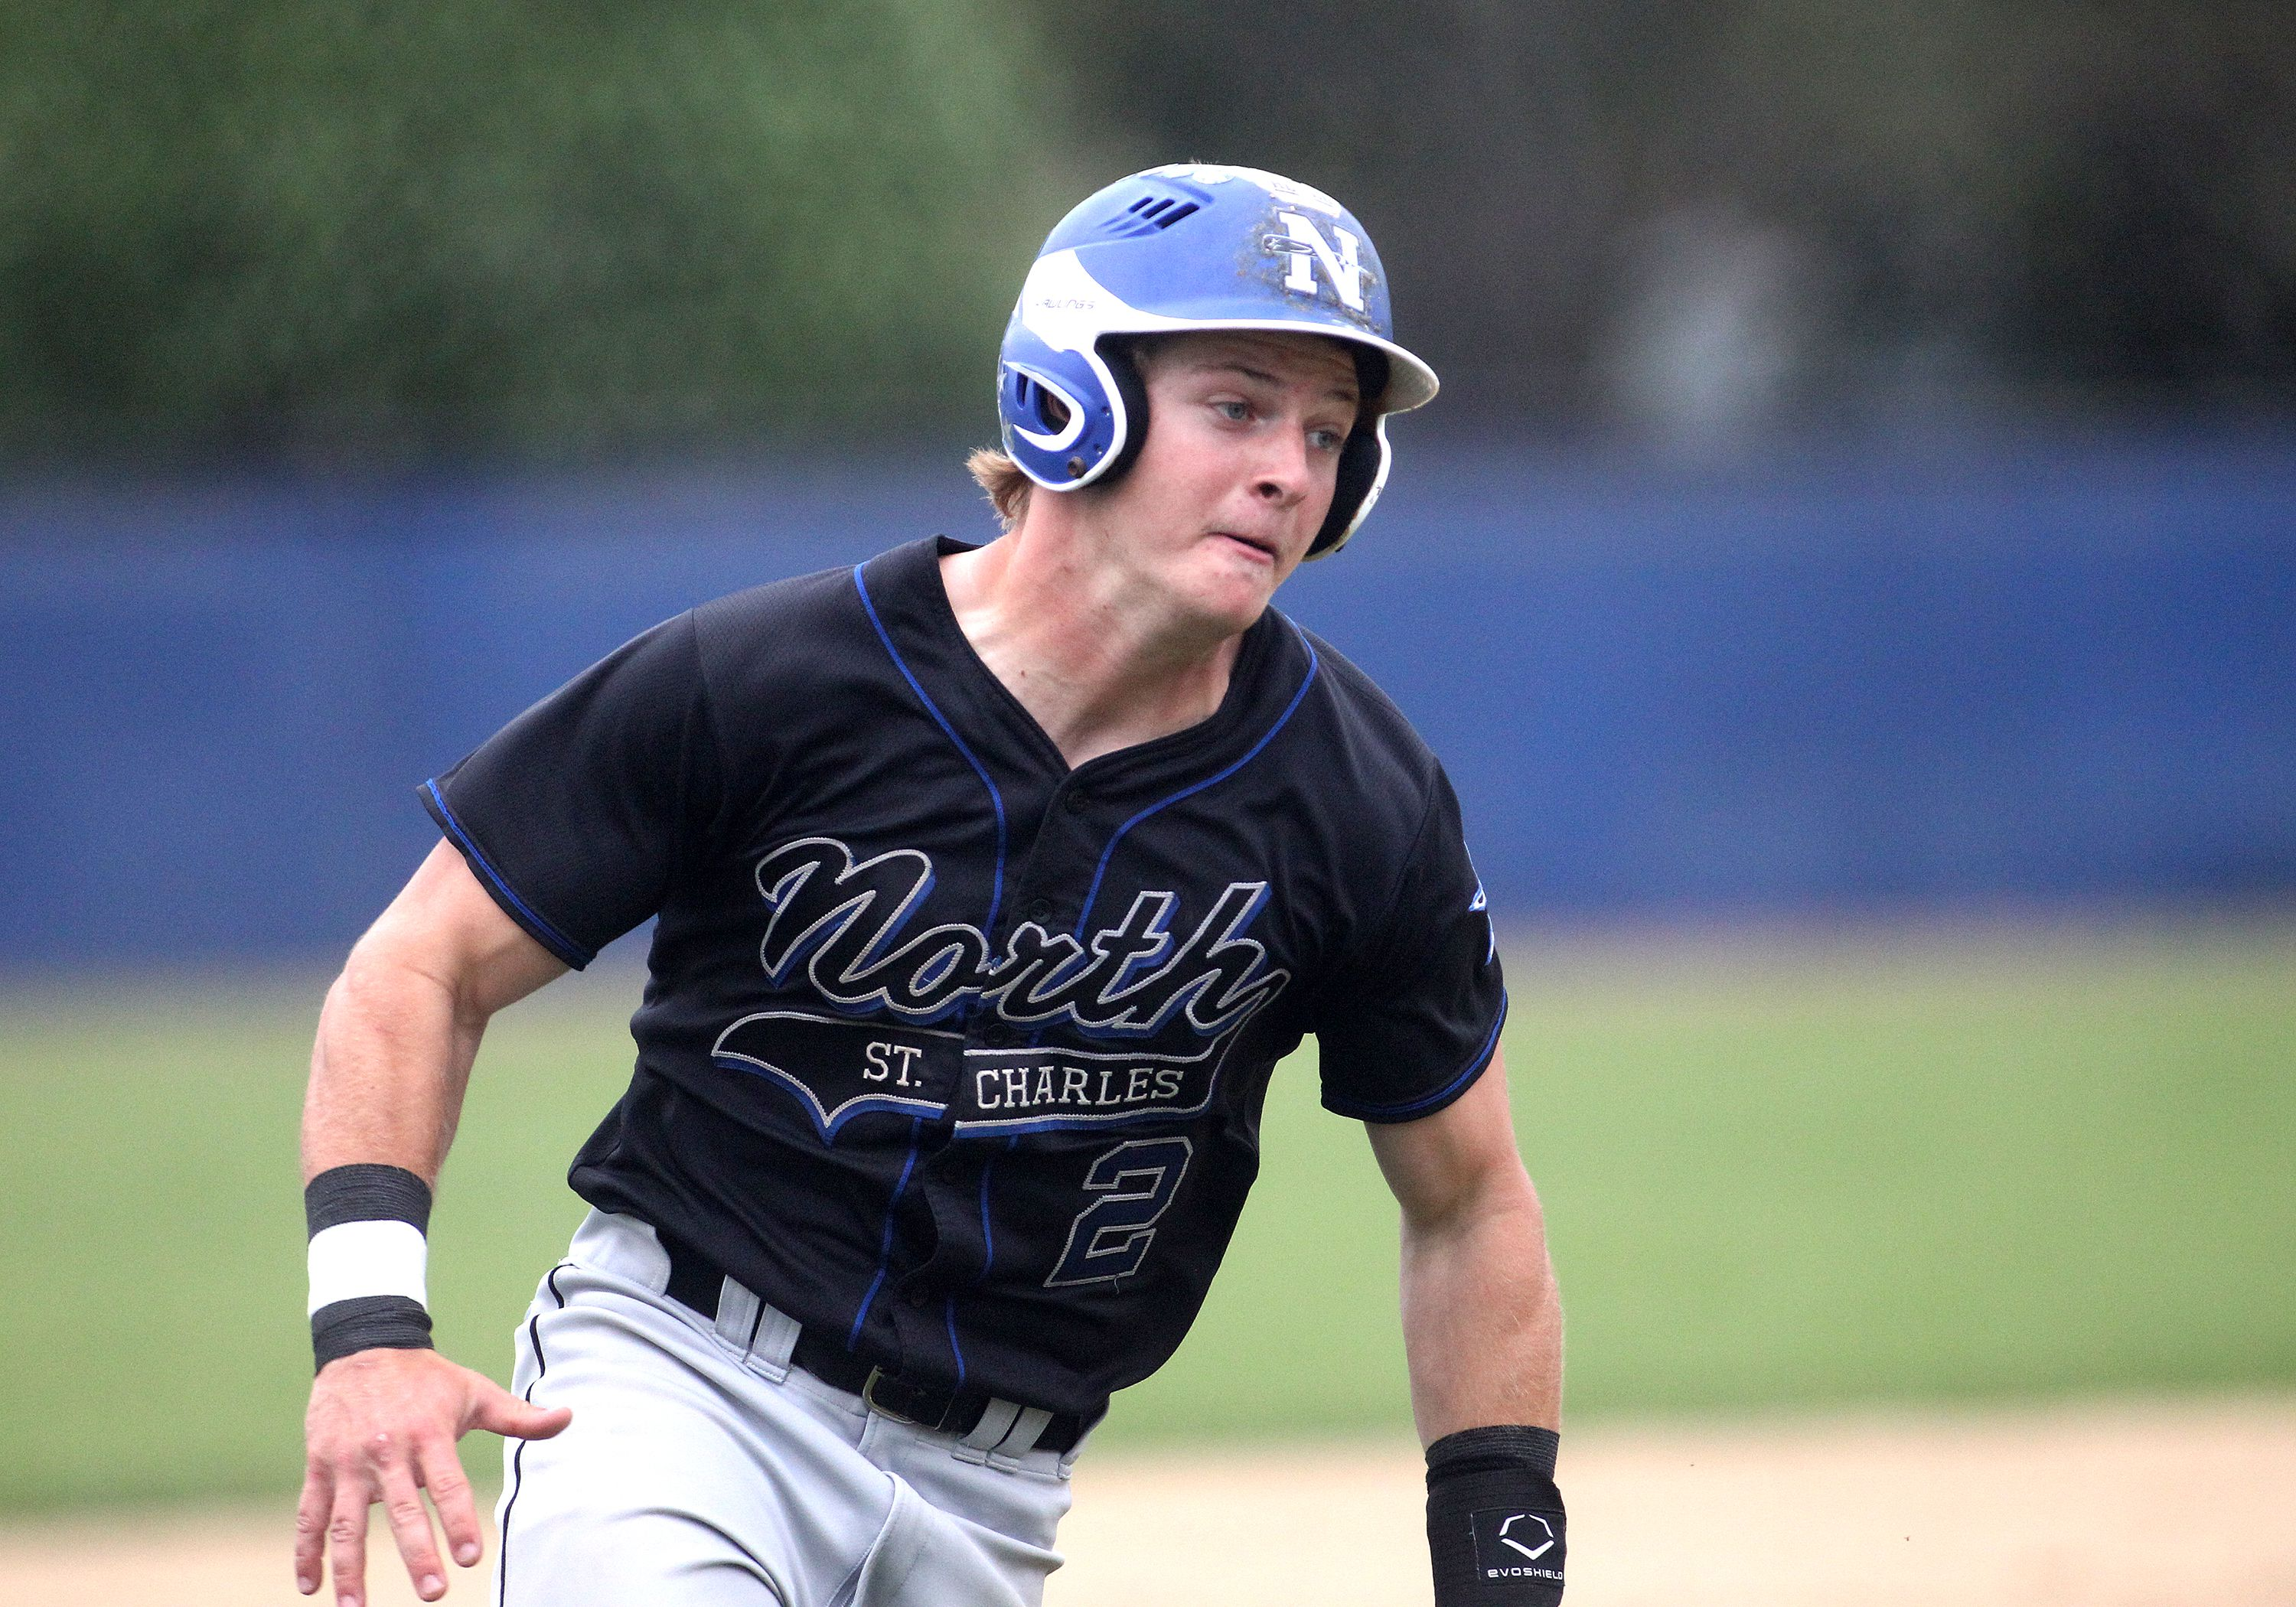 St. Charles North's Nick DeMarco runs home during a game at Geneva High School on Monday, May 3, 2021.